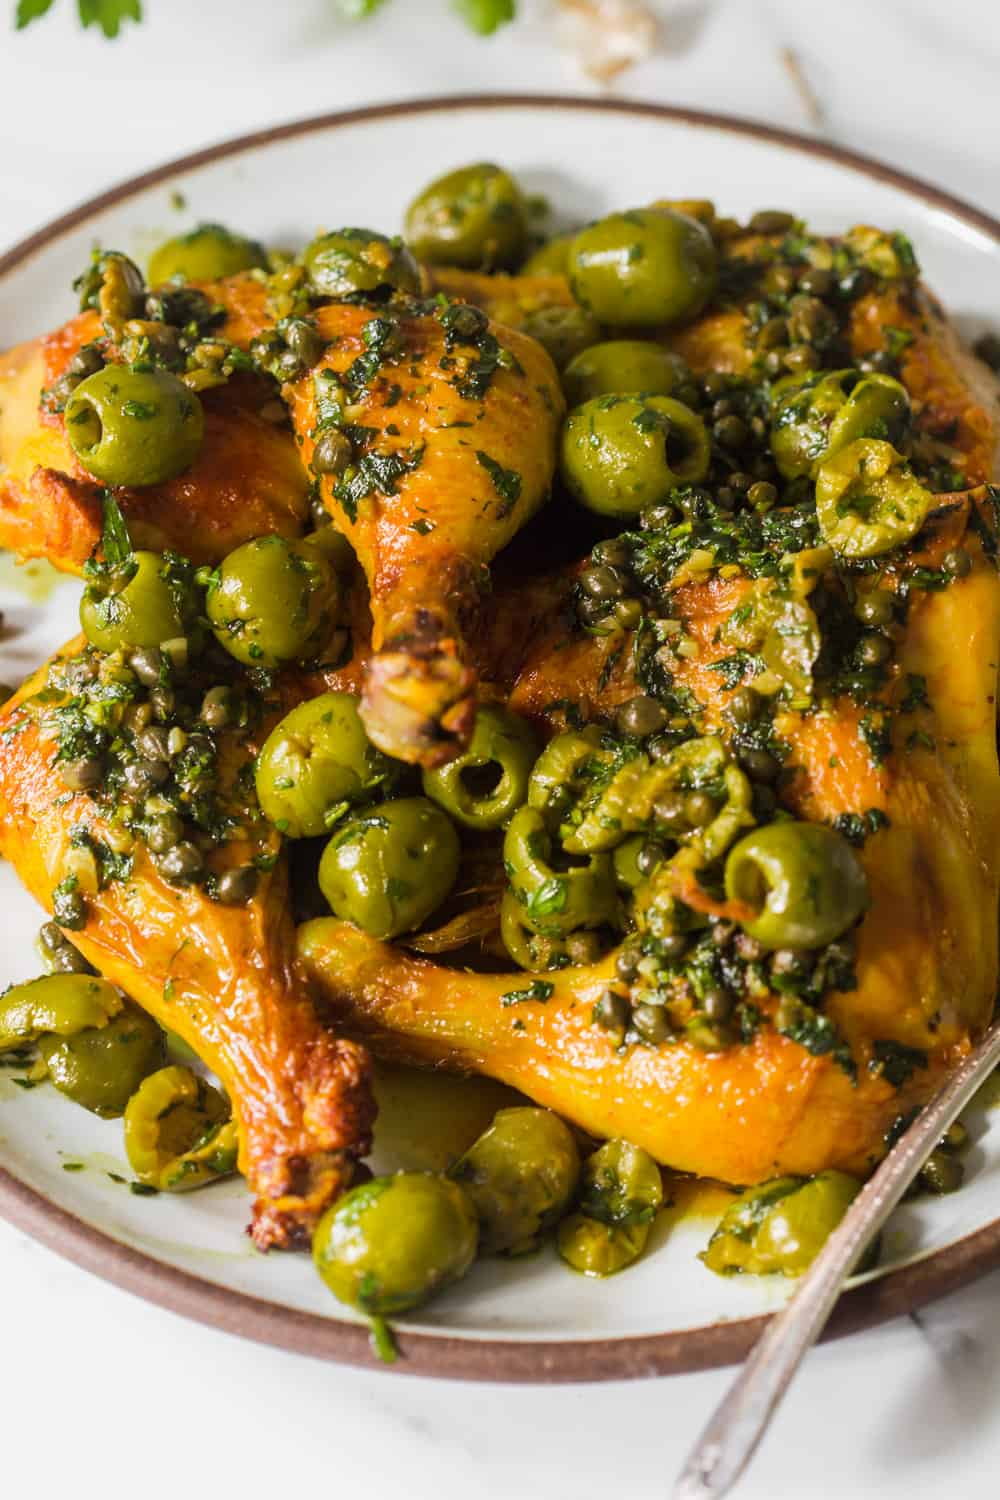 Close up of baked chicken quarters on a white plate with olives and capers on top.